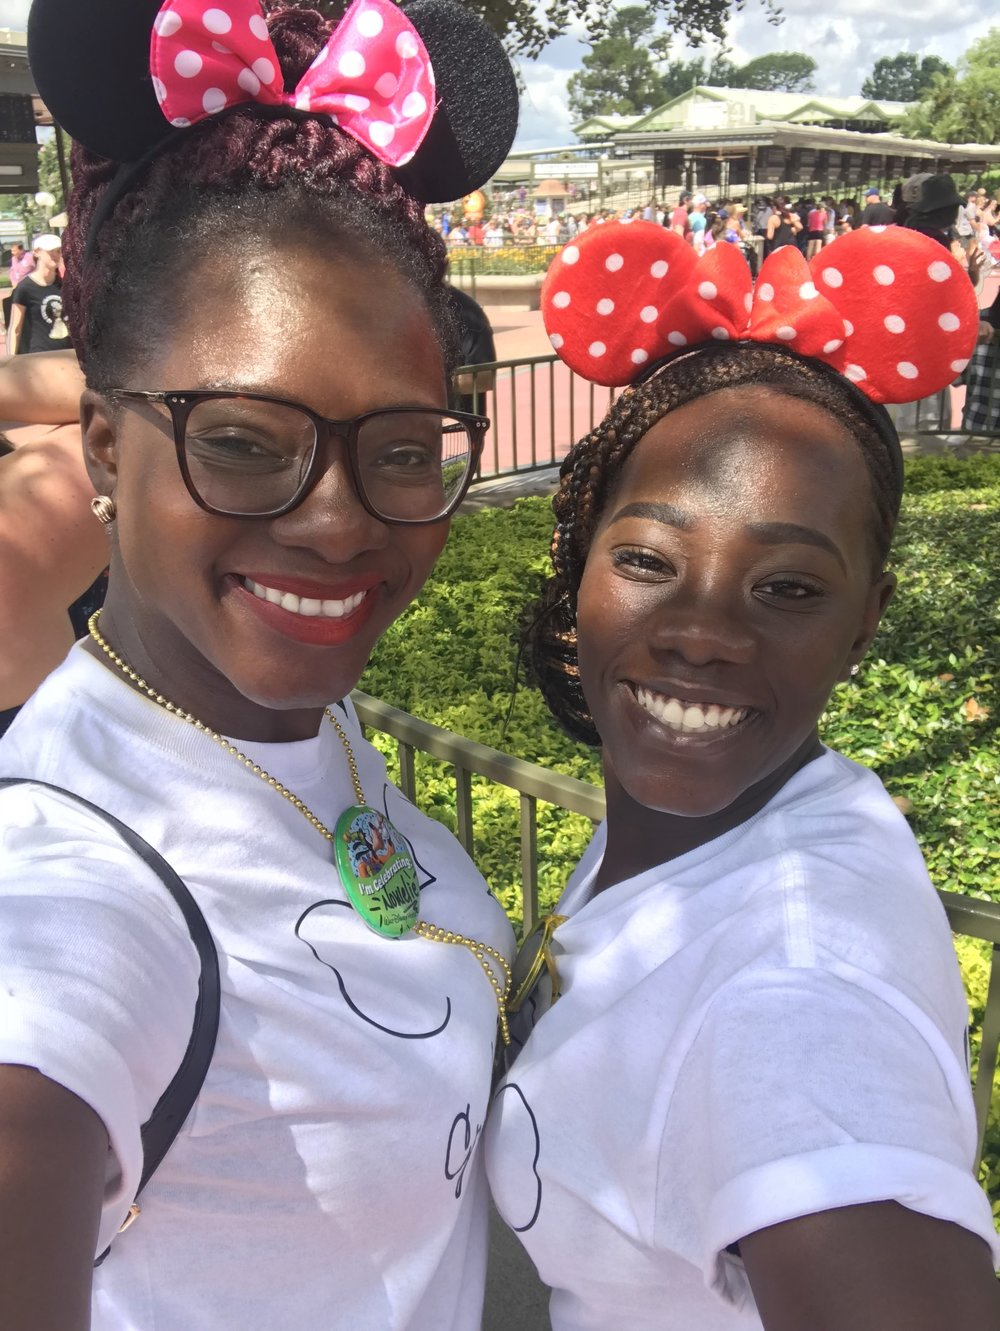 June 2018: In June, my family and friends became big kids and had a blast at  #DisneyWorld  in honor of my sister's graduation from college.